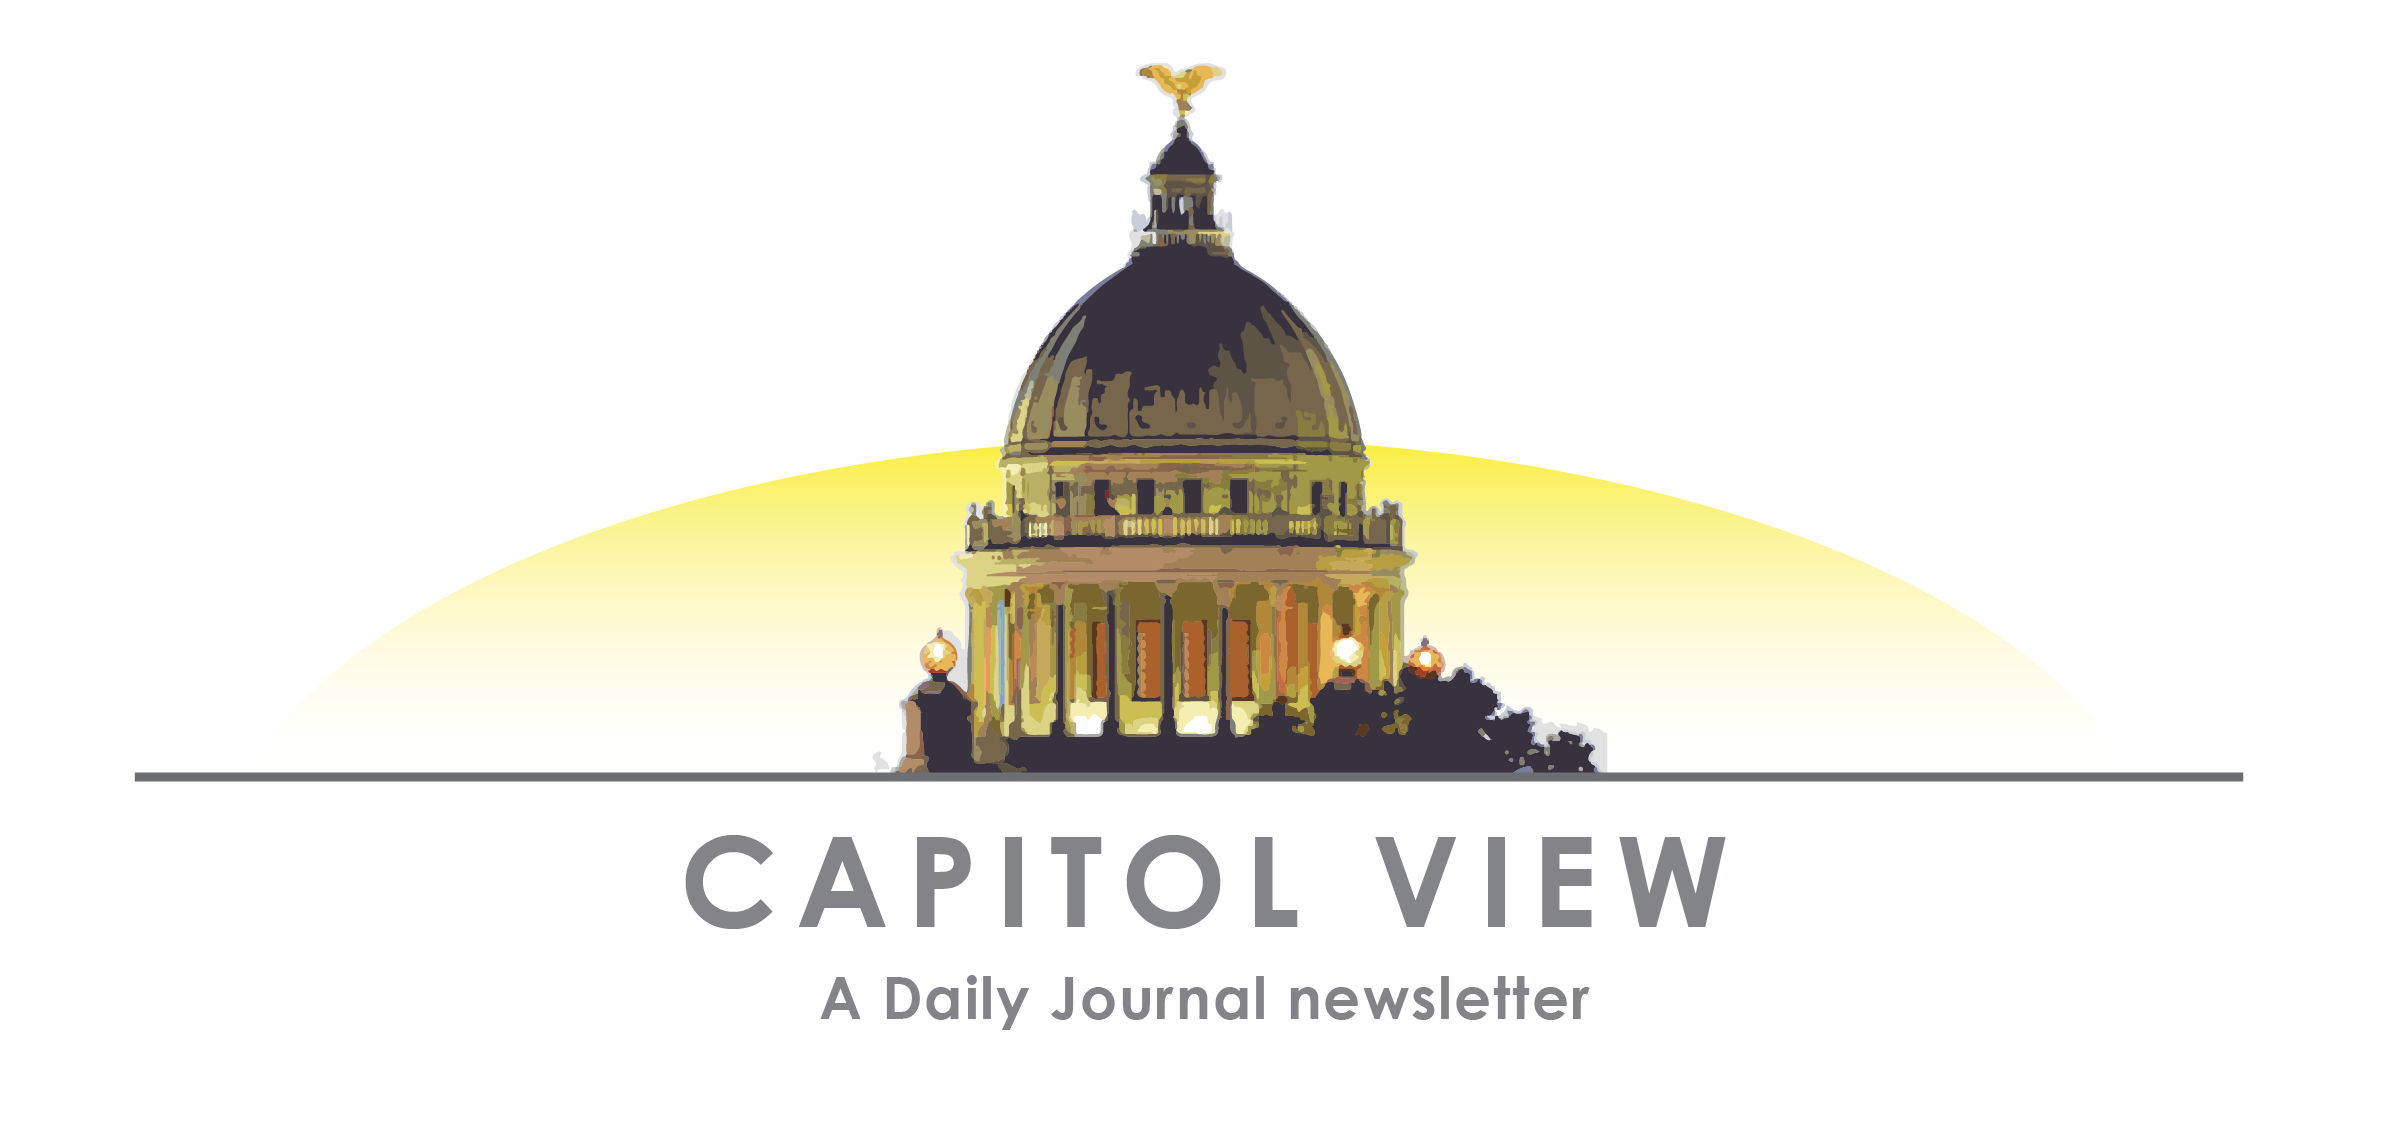 Daily Journal - Capitolview